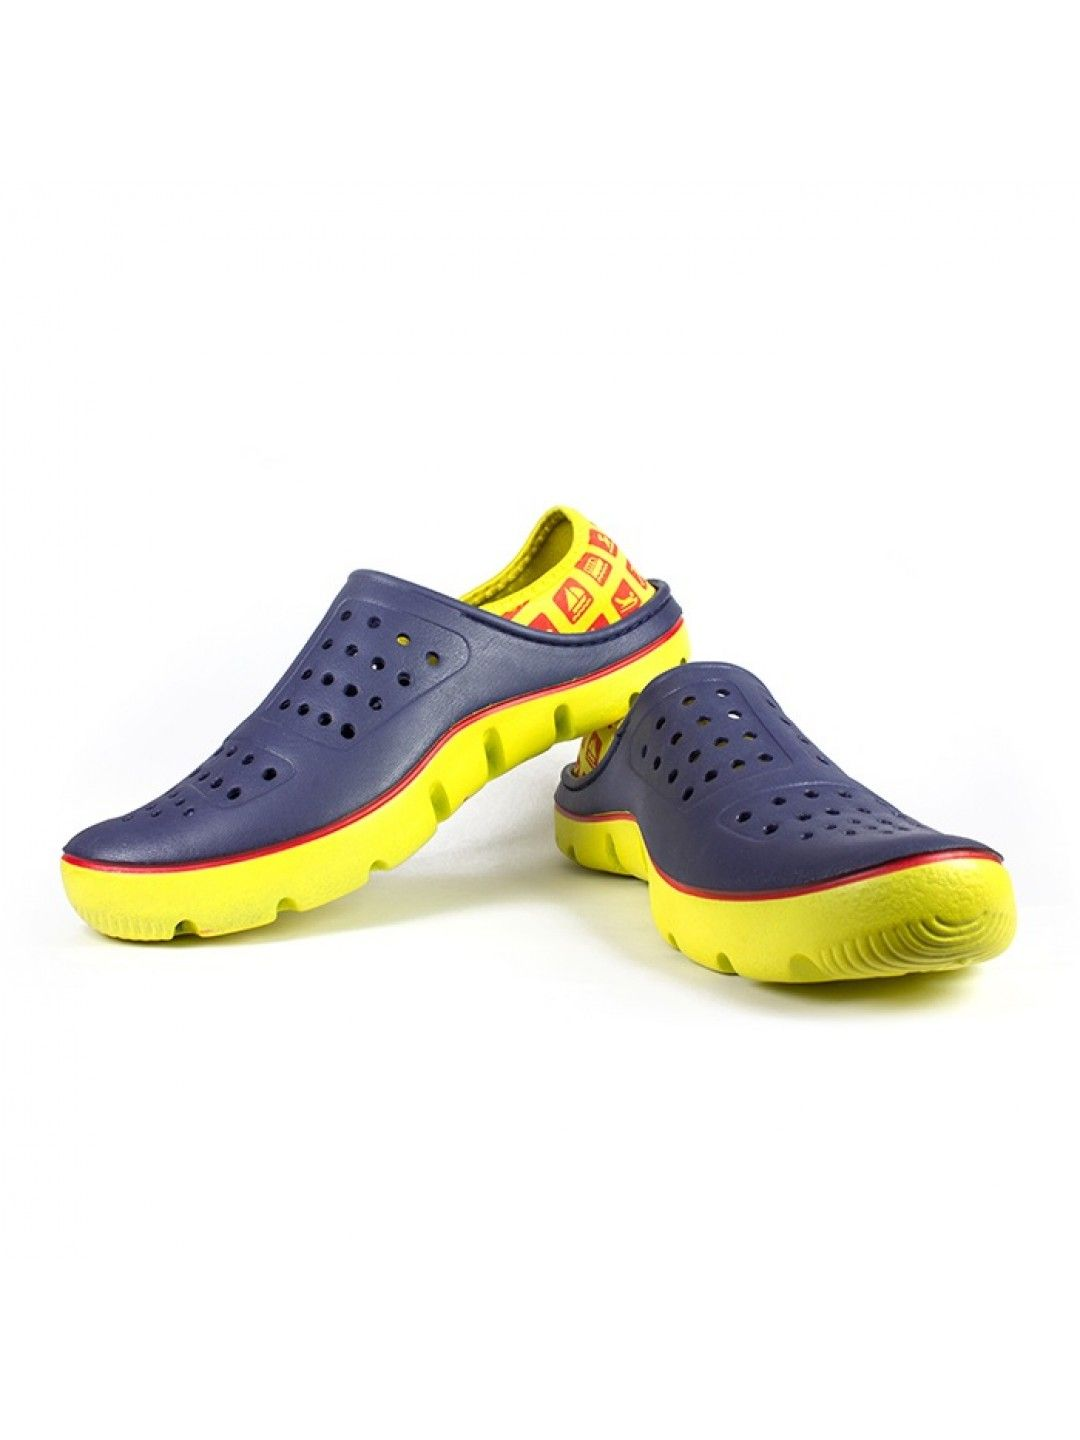 Buy Vostro Bob Blue Yellow Crocs Sandals & Floaters online Shoping in India  made From Distressed